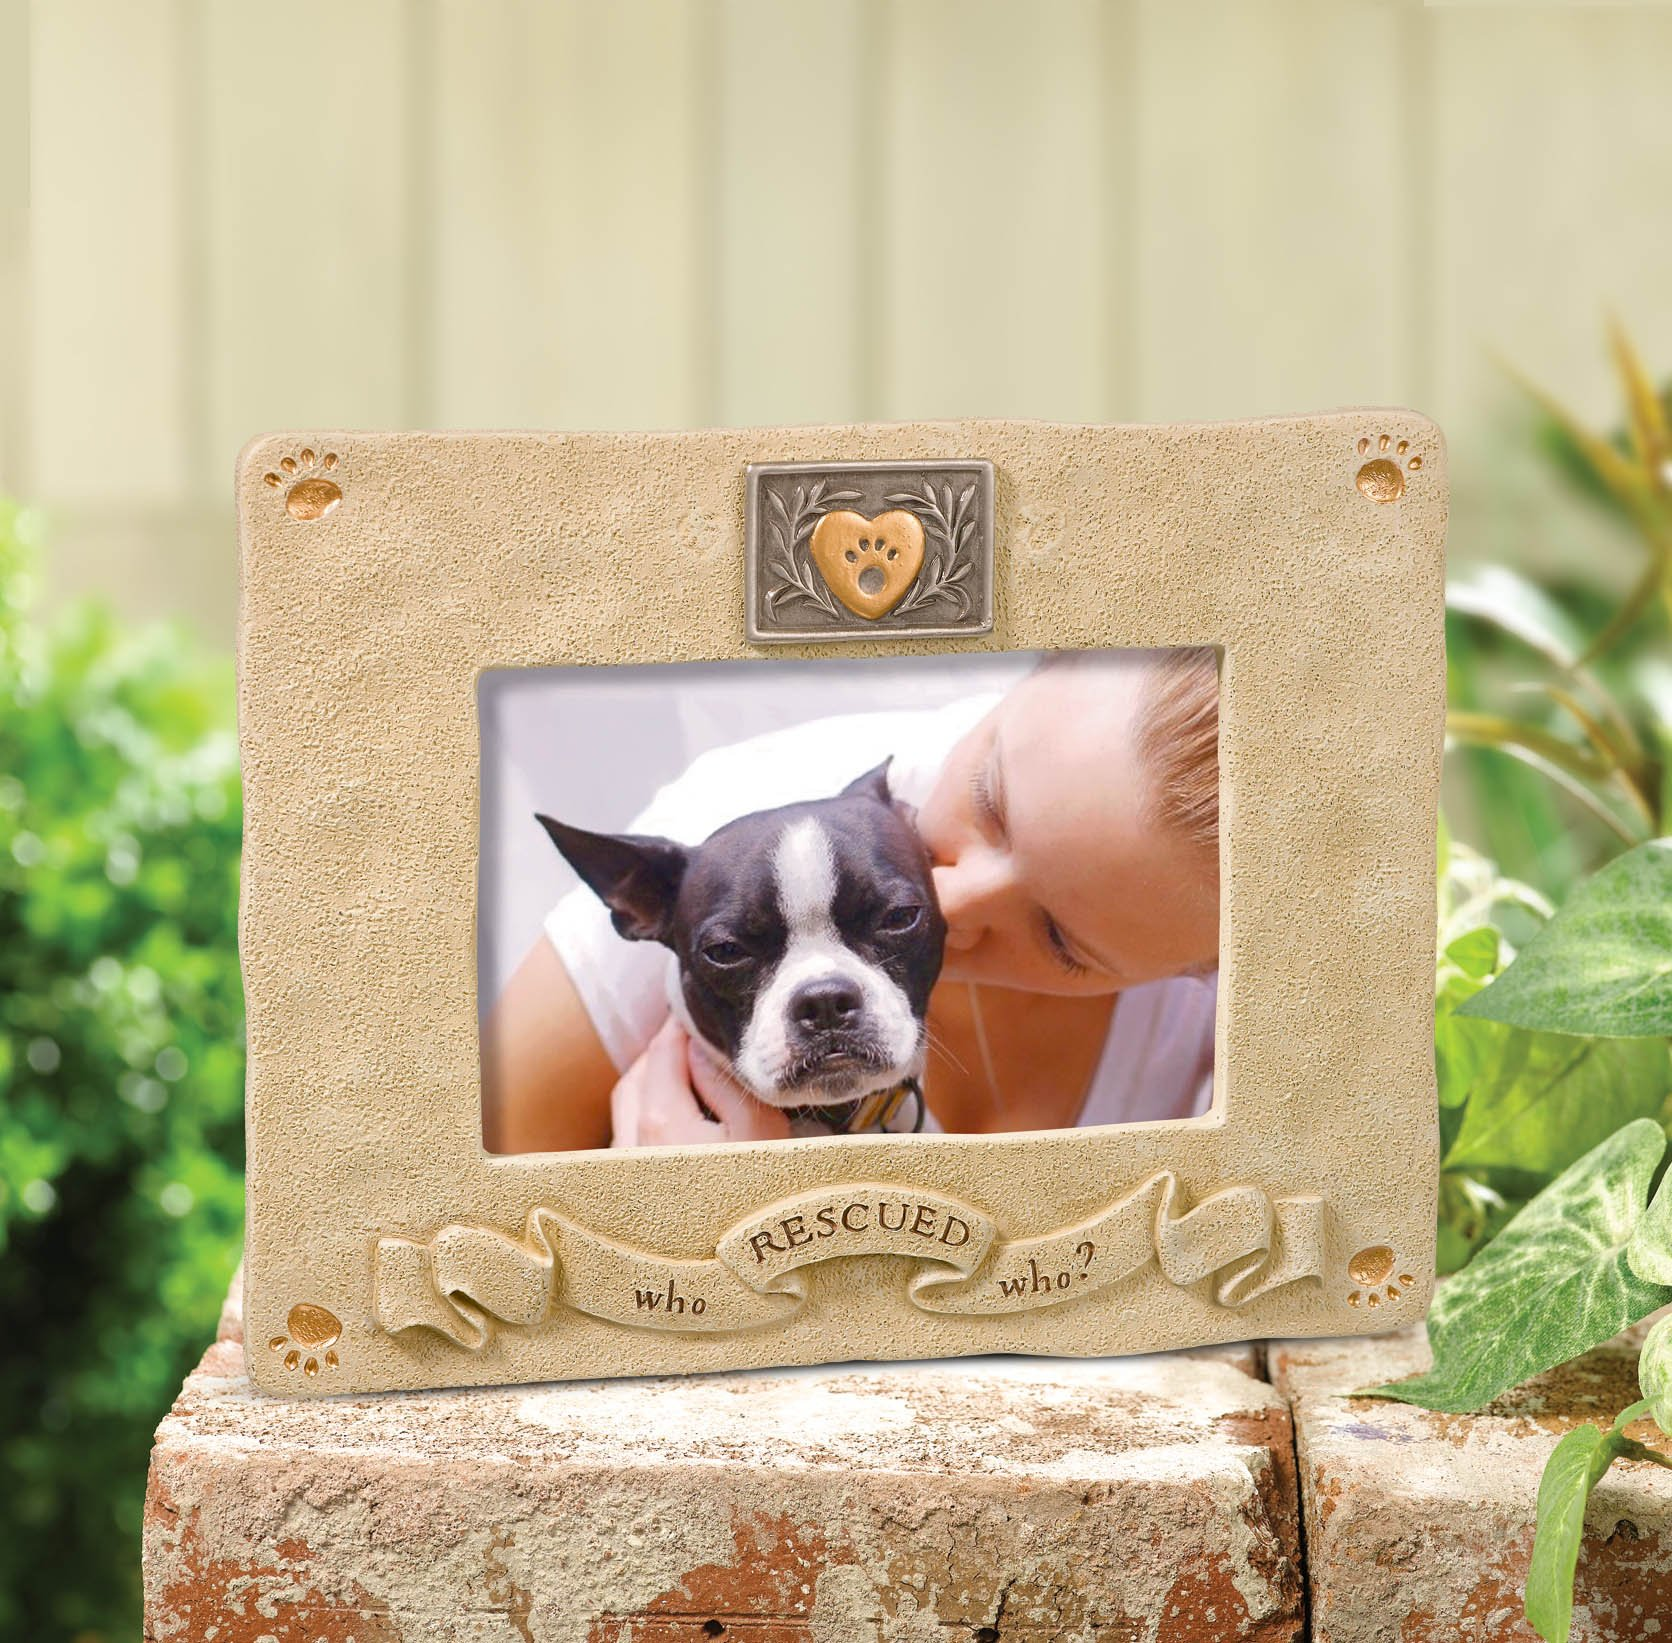 Grasslands Road Rescued Picture Frame, 4 by 6-Inch by Grasslands Road (Image #2)